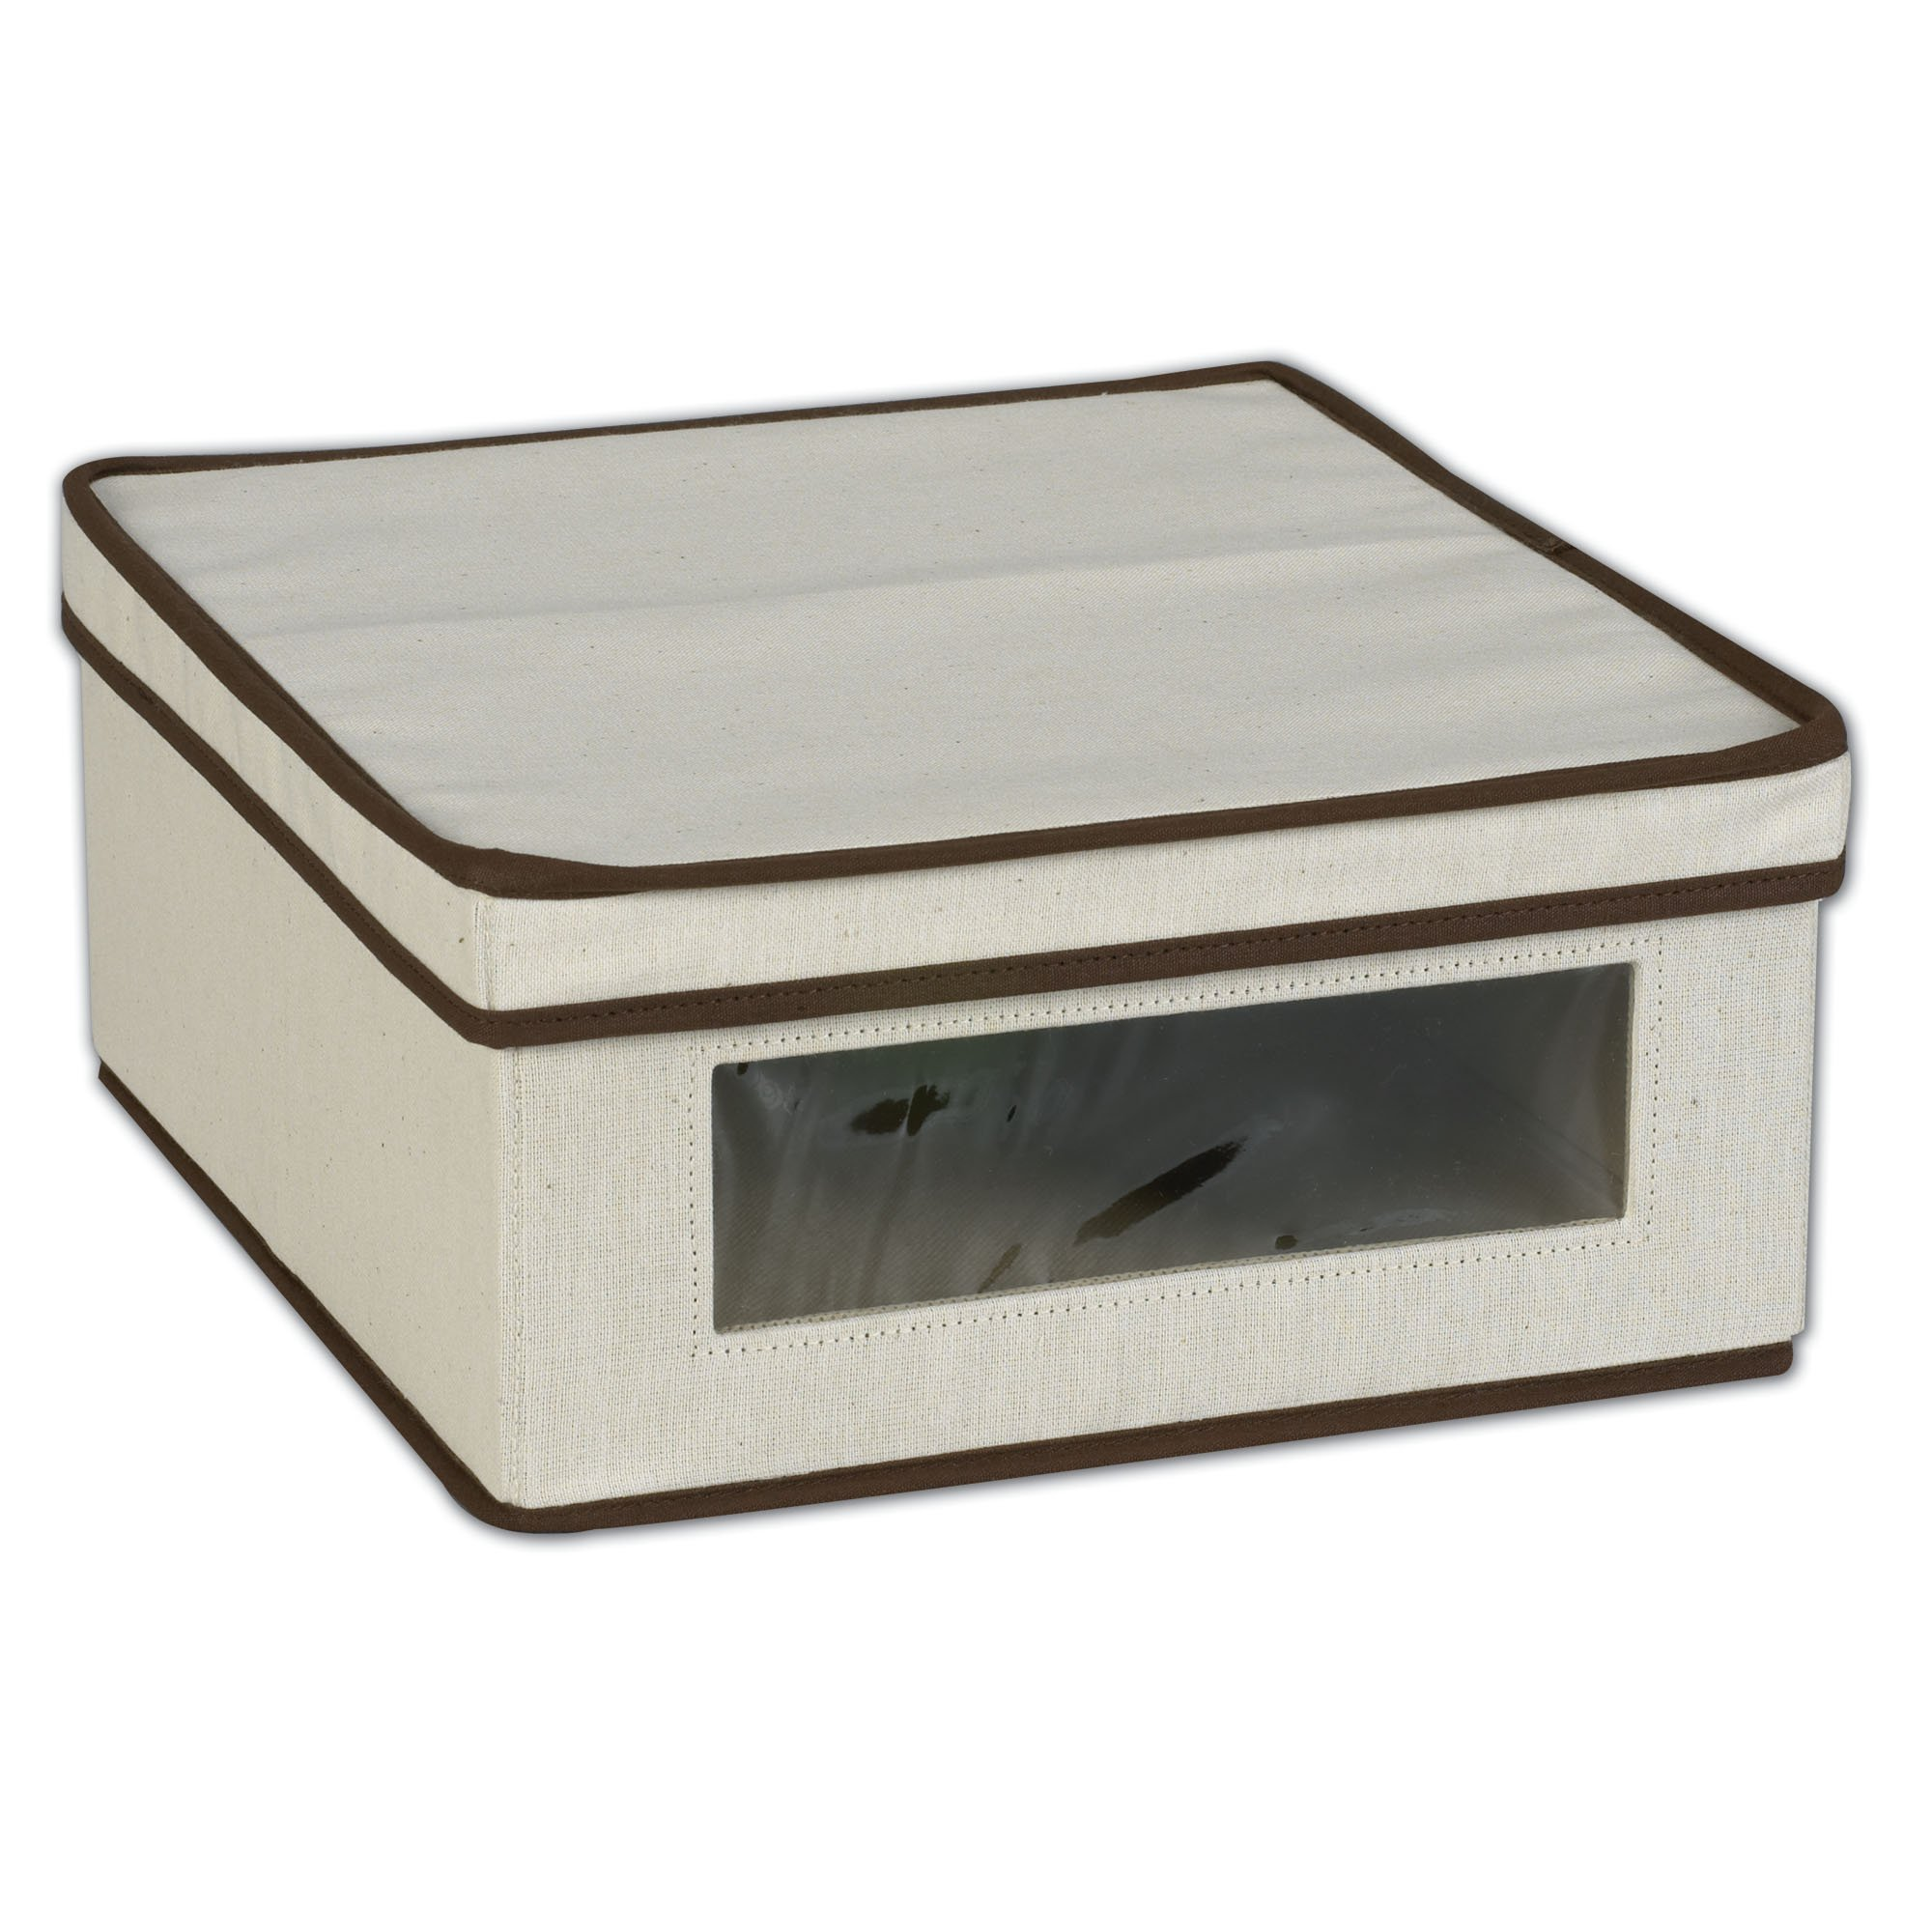 Household Essentials 510 Vision Storage Box - Natural Canvas with Brown Trim - Small